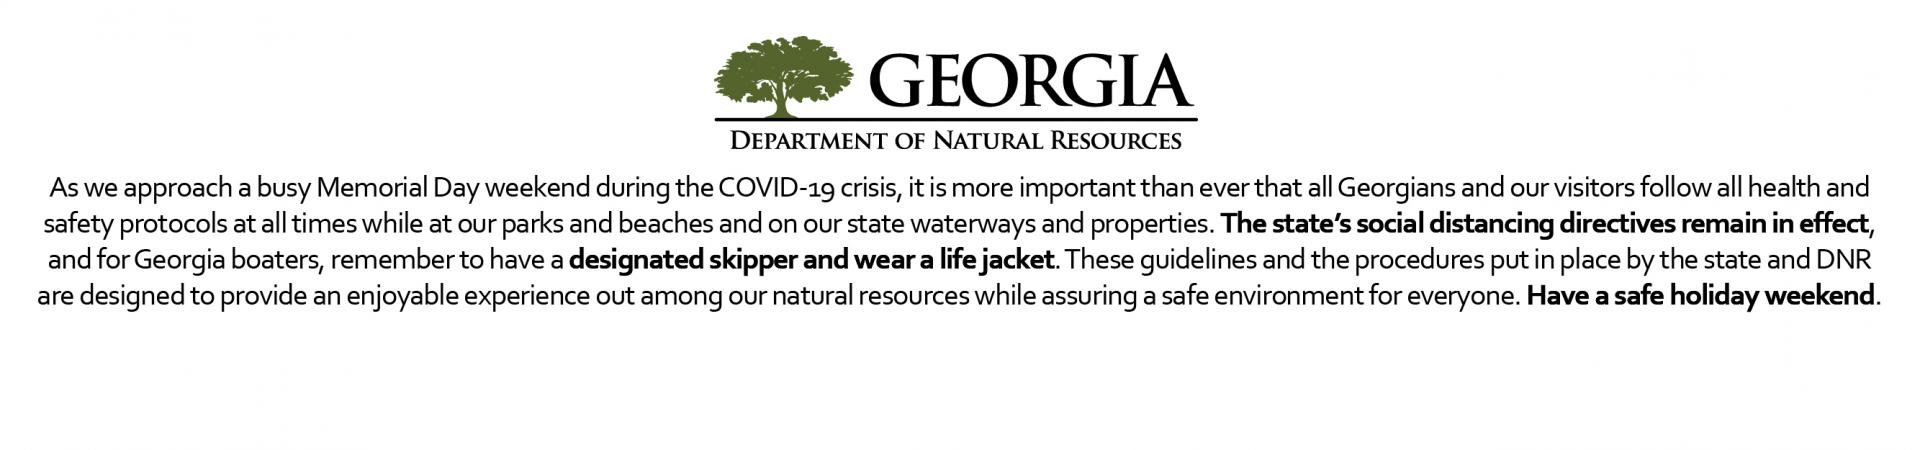 As we approach a busy Memorial Day weekend during the COVID-19 crisis, it is more important than ever that all Georgians and our visitors follow all health and safety protocols at all times while at our parks and beaches and on our state waterways and properties. The state's social distancing directives remain in effect, and for Georgia boaters, remember to have a designated skipper and wear a life jacket.